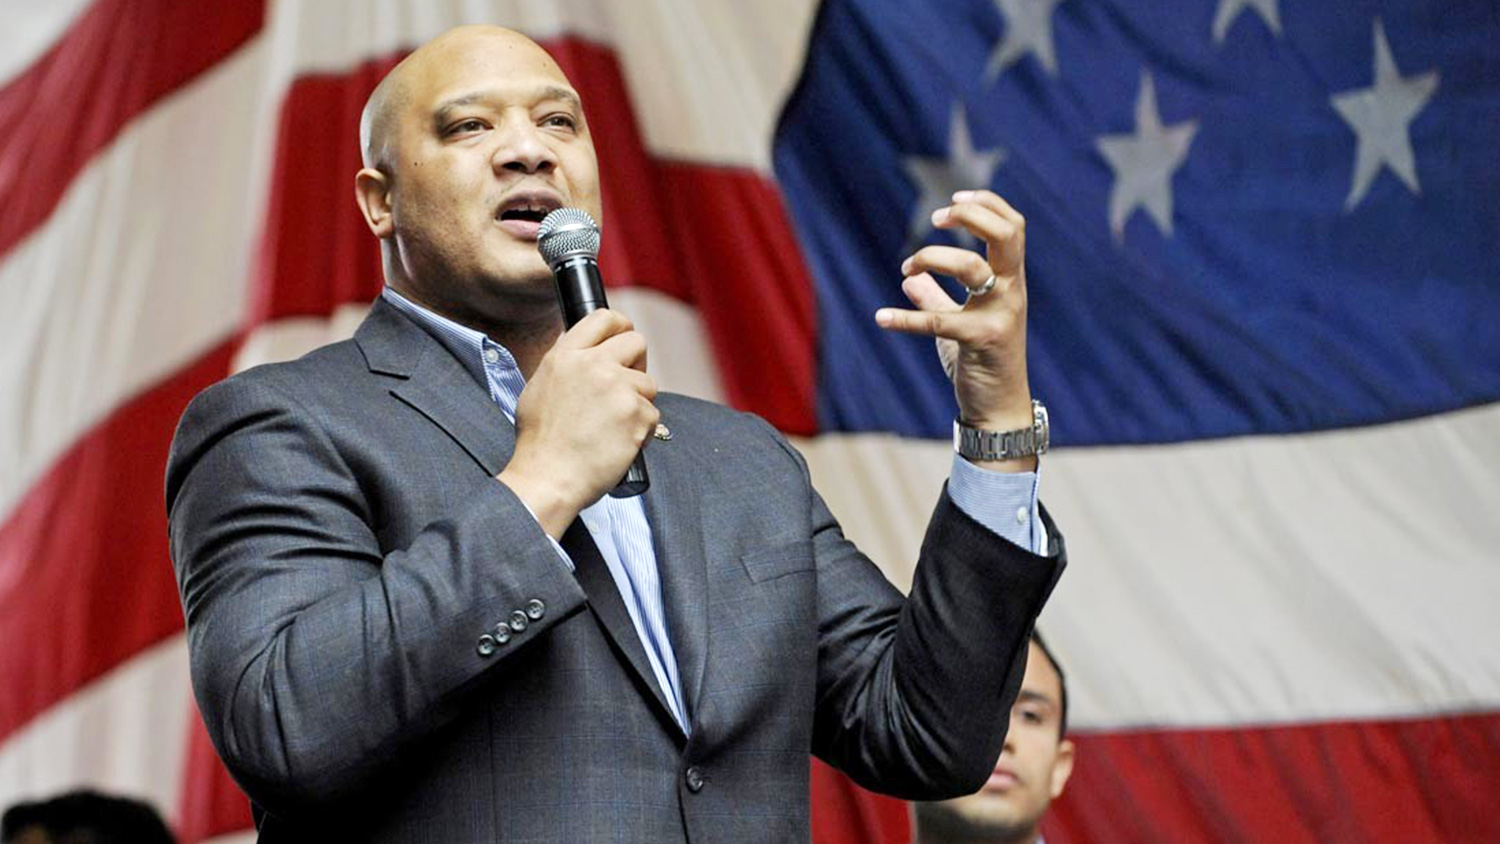 Rep. Andre Carson - D-IN 7th District